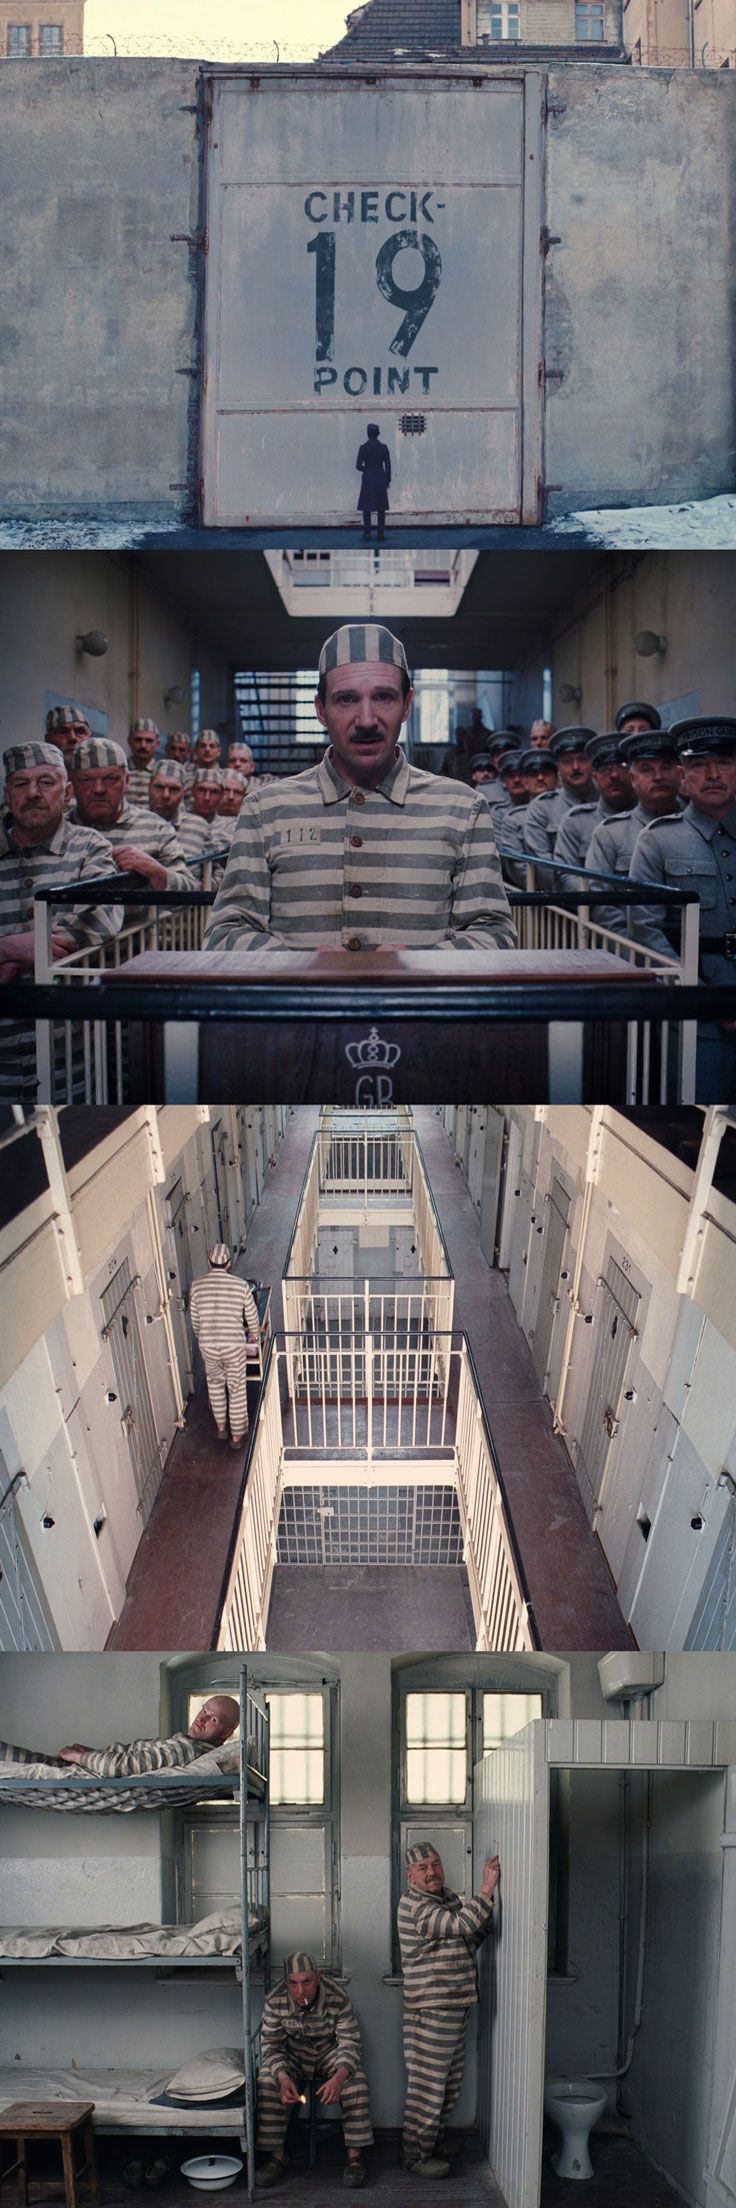 Prison scenes from The Grand Budapest Hotel. Cinematography by Robert Yeoman.